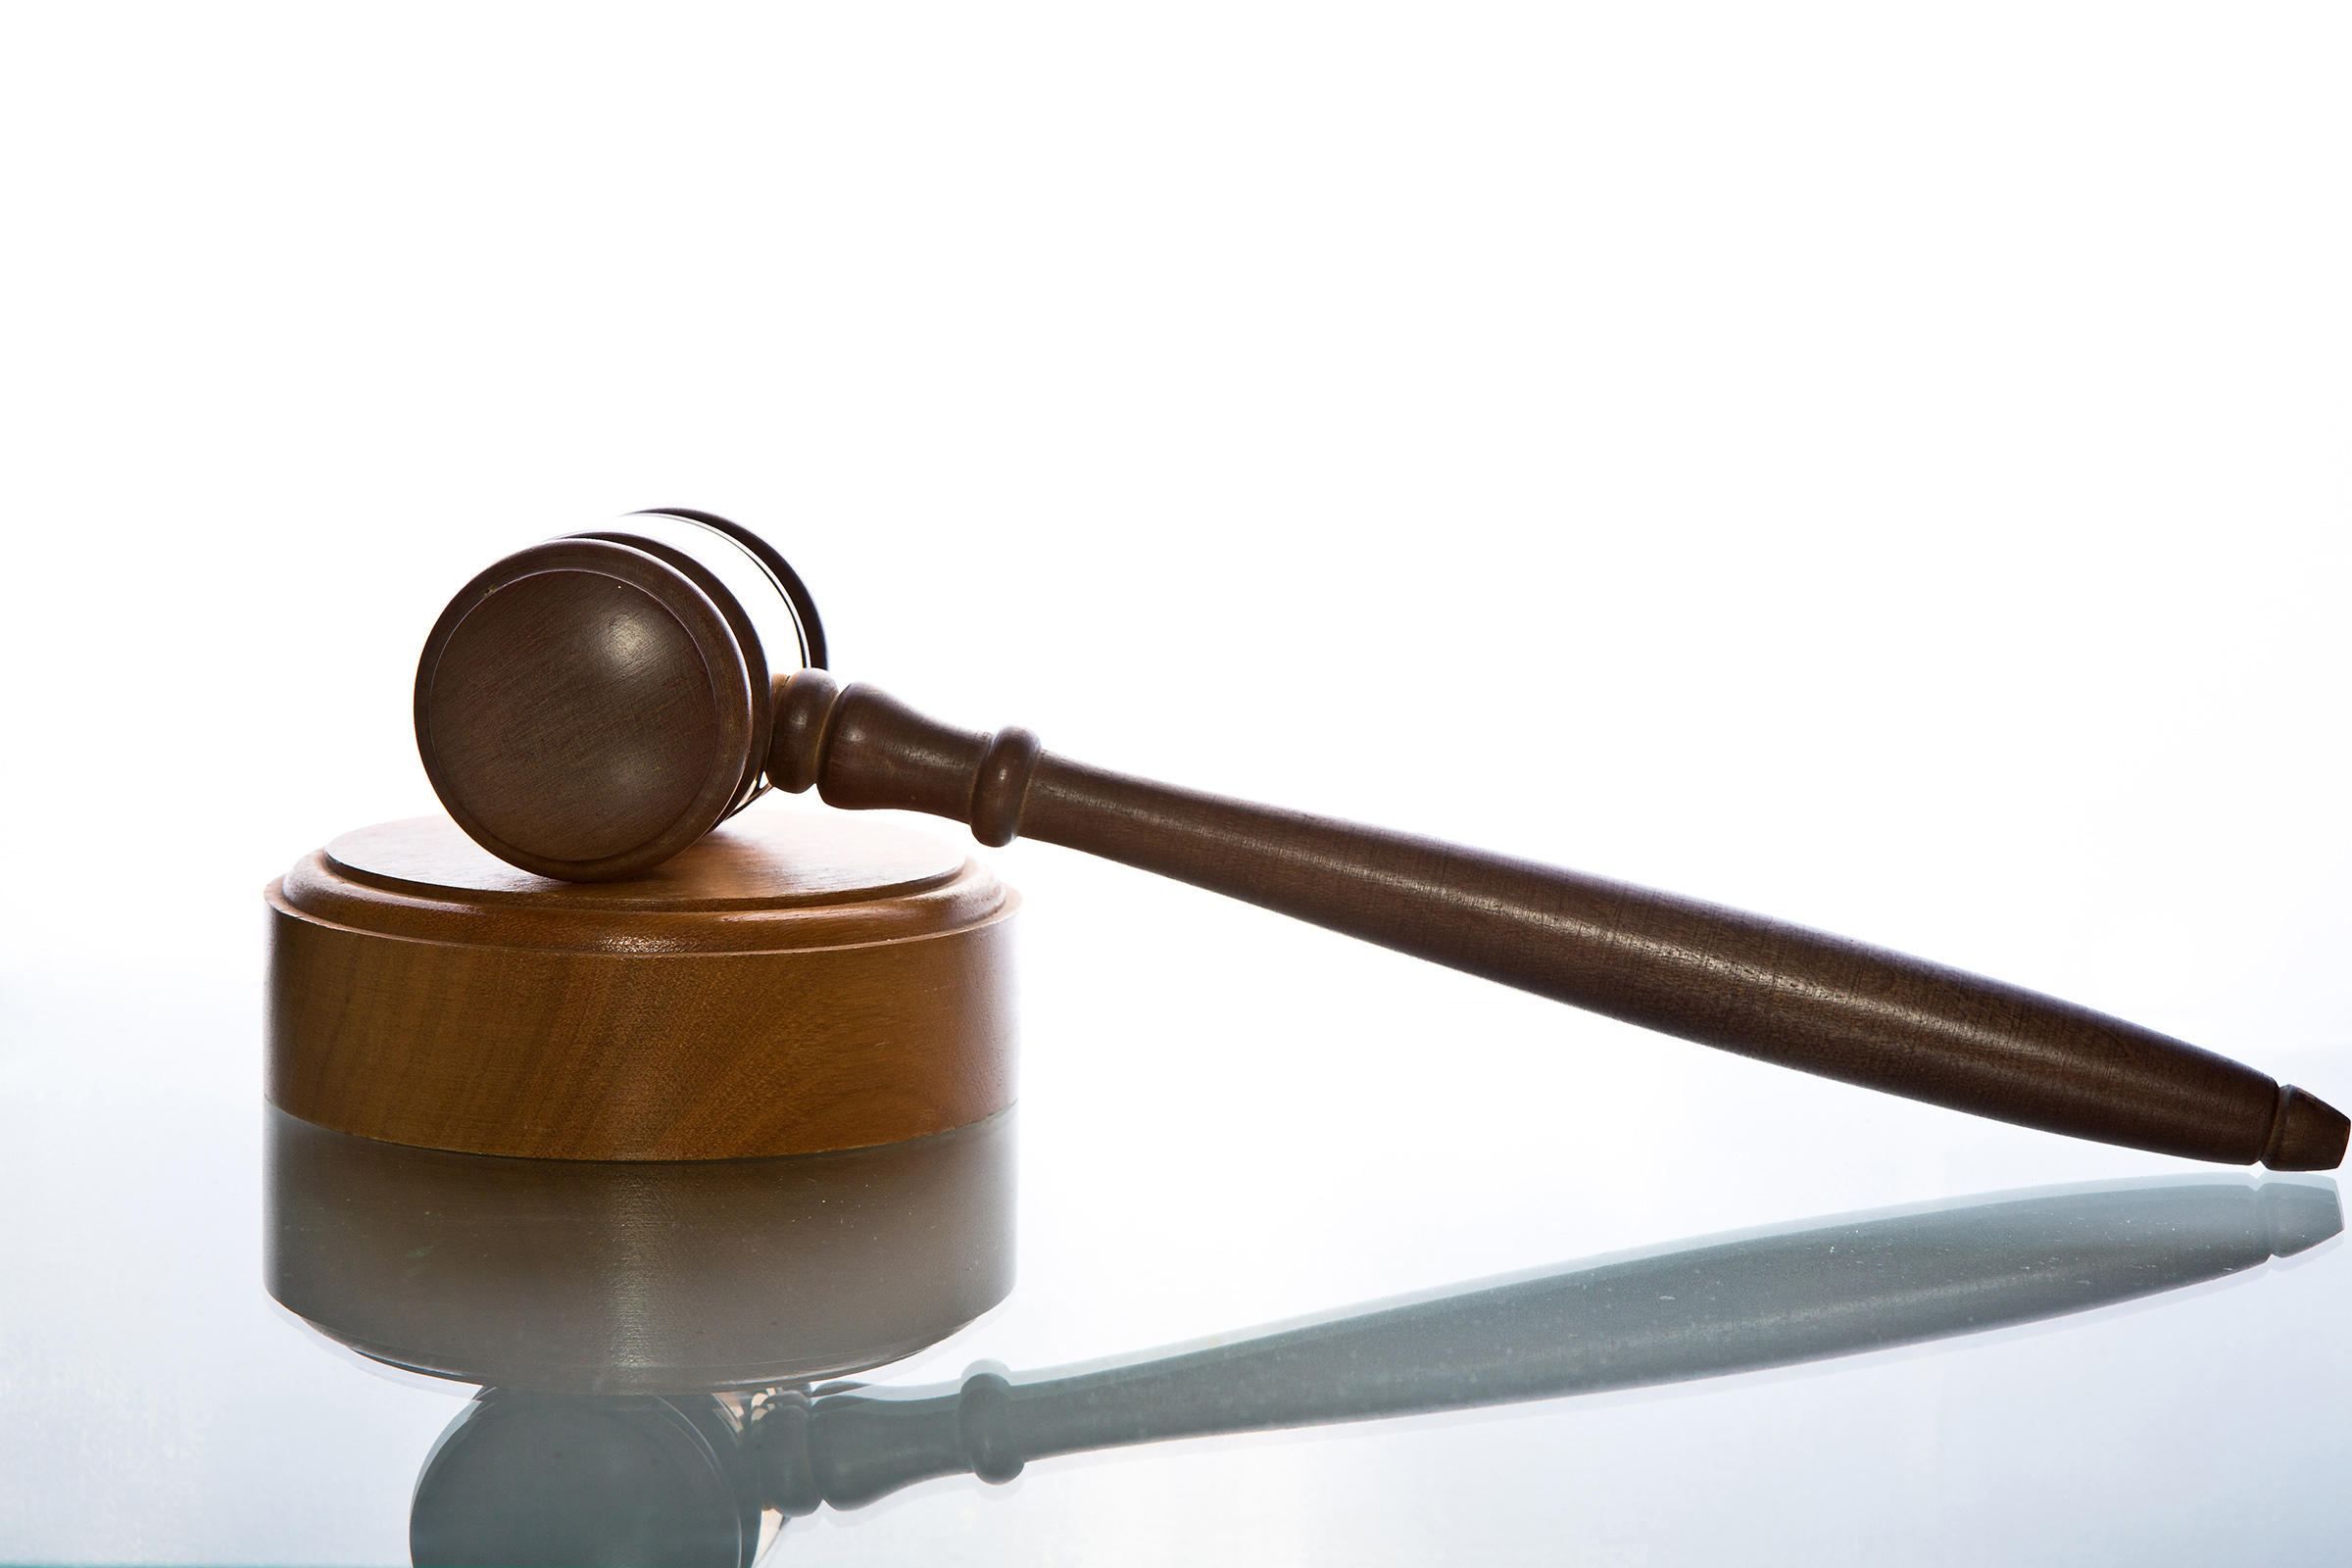 Law gavel with reflection